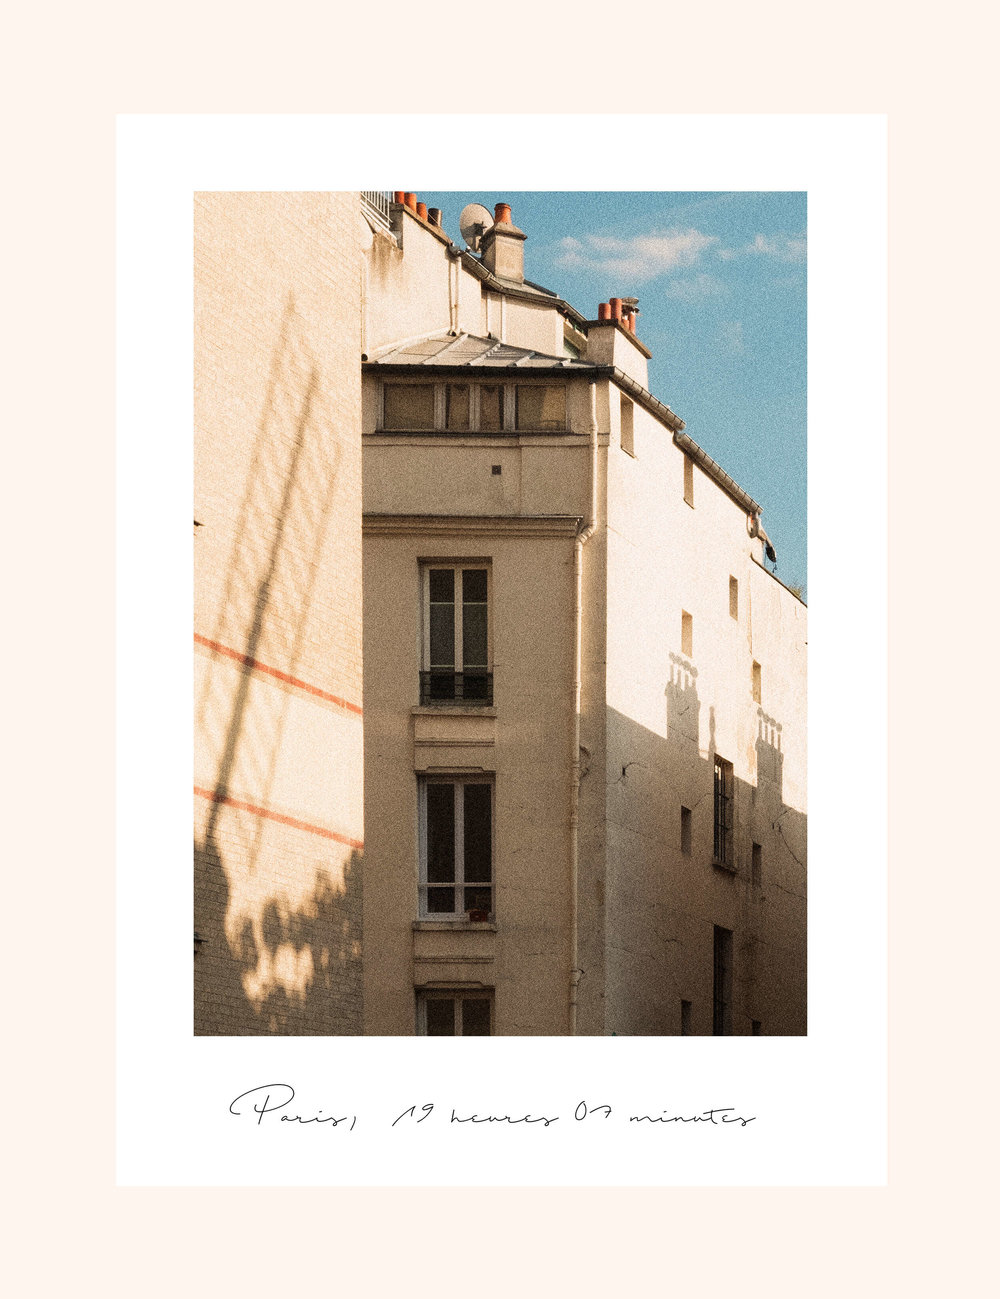 Paris, with love - 01